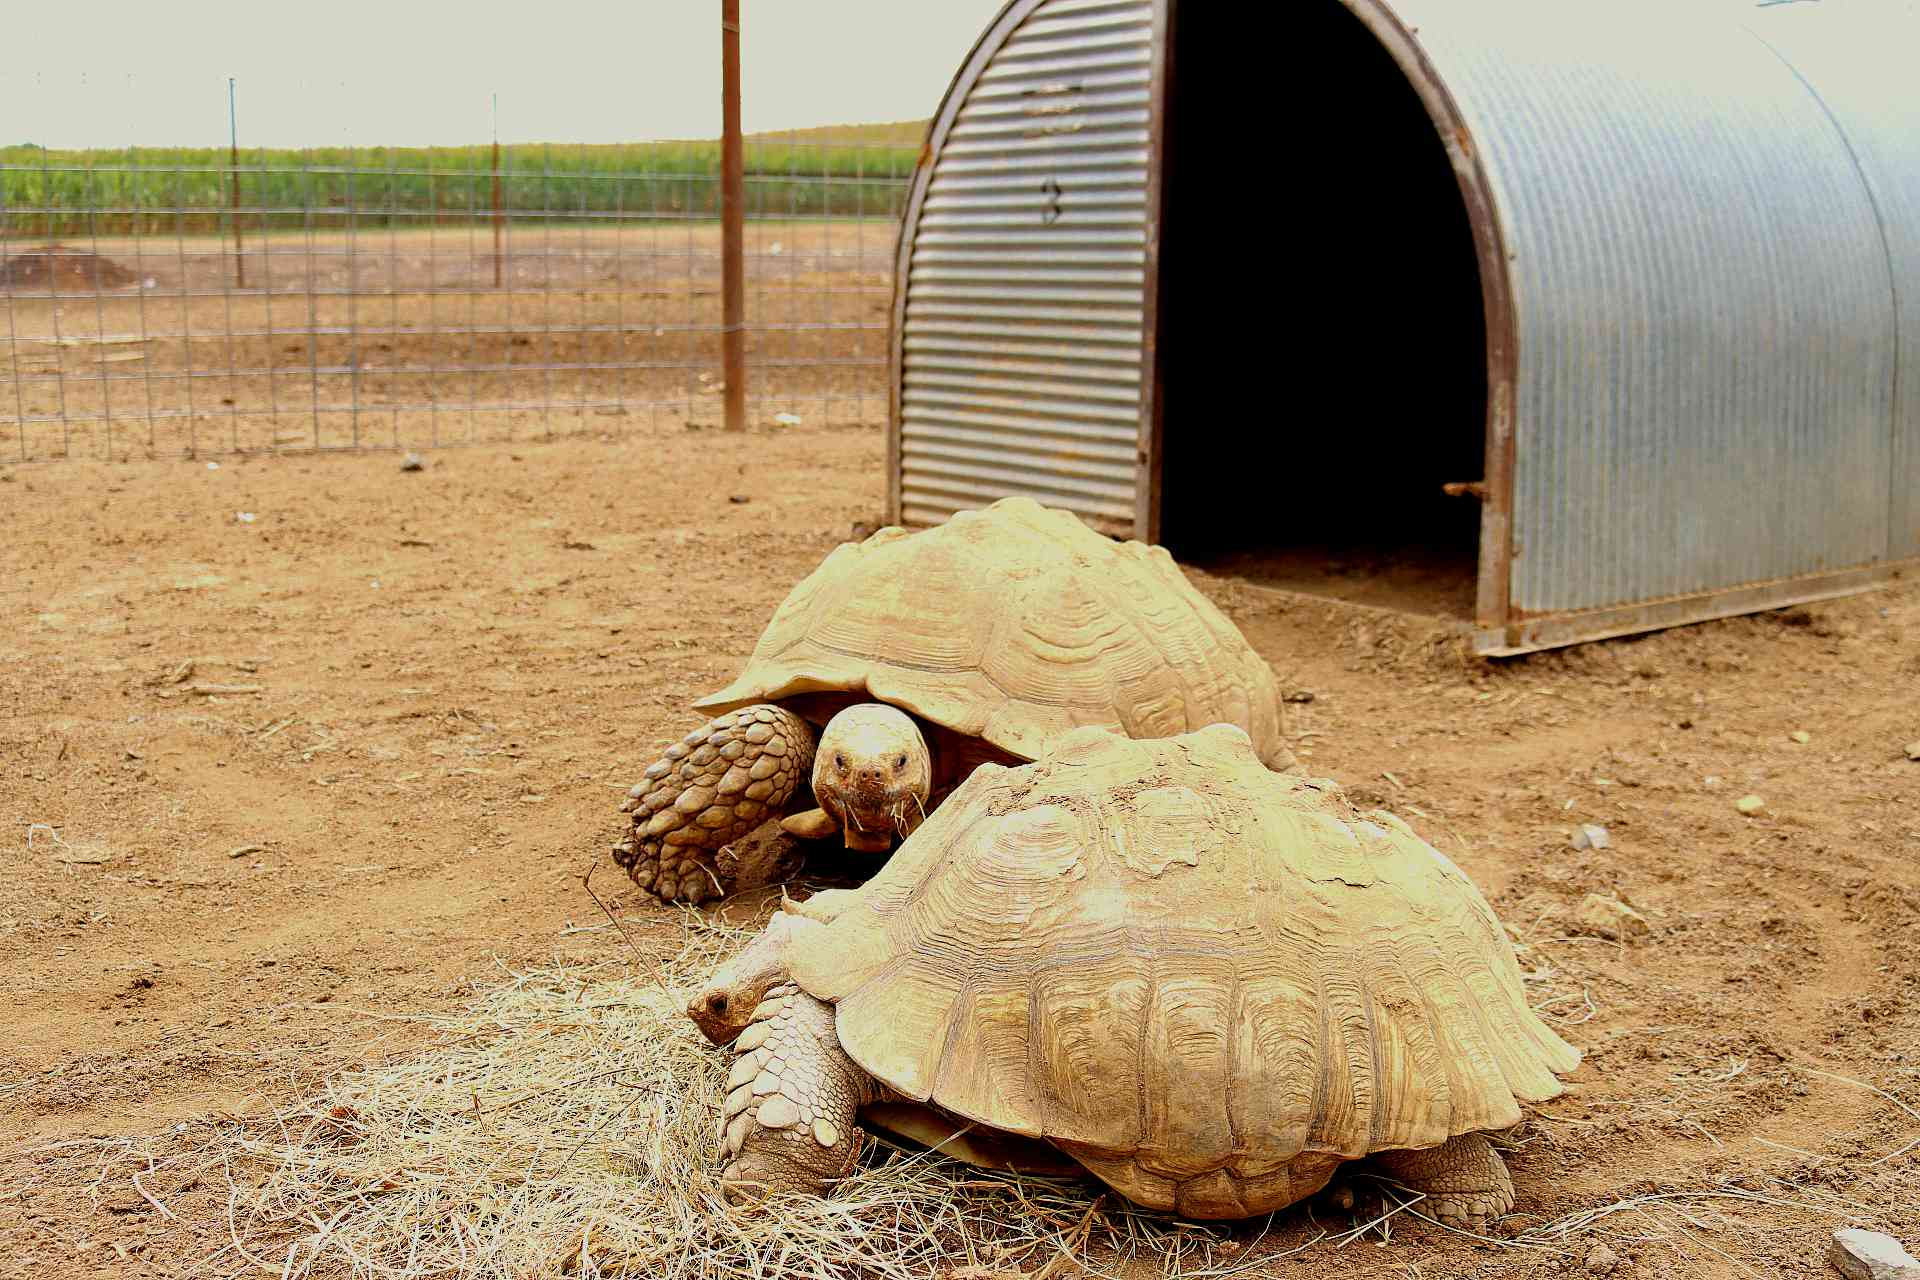 Two sulcata tortoises walking outside metal shelter in wired fence enclosure